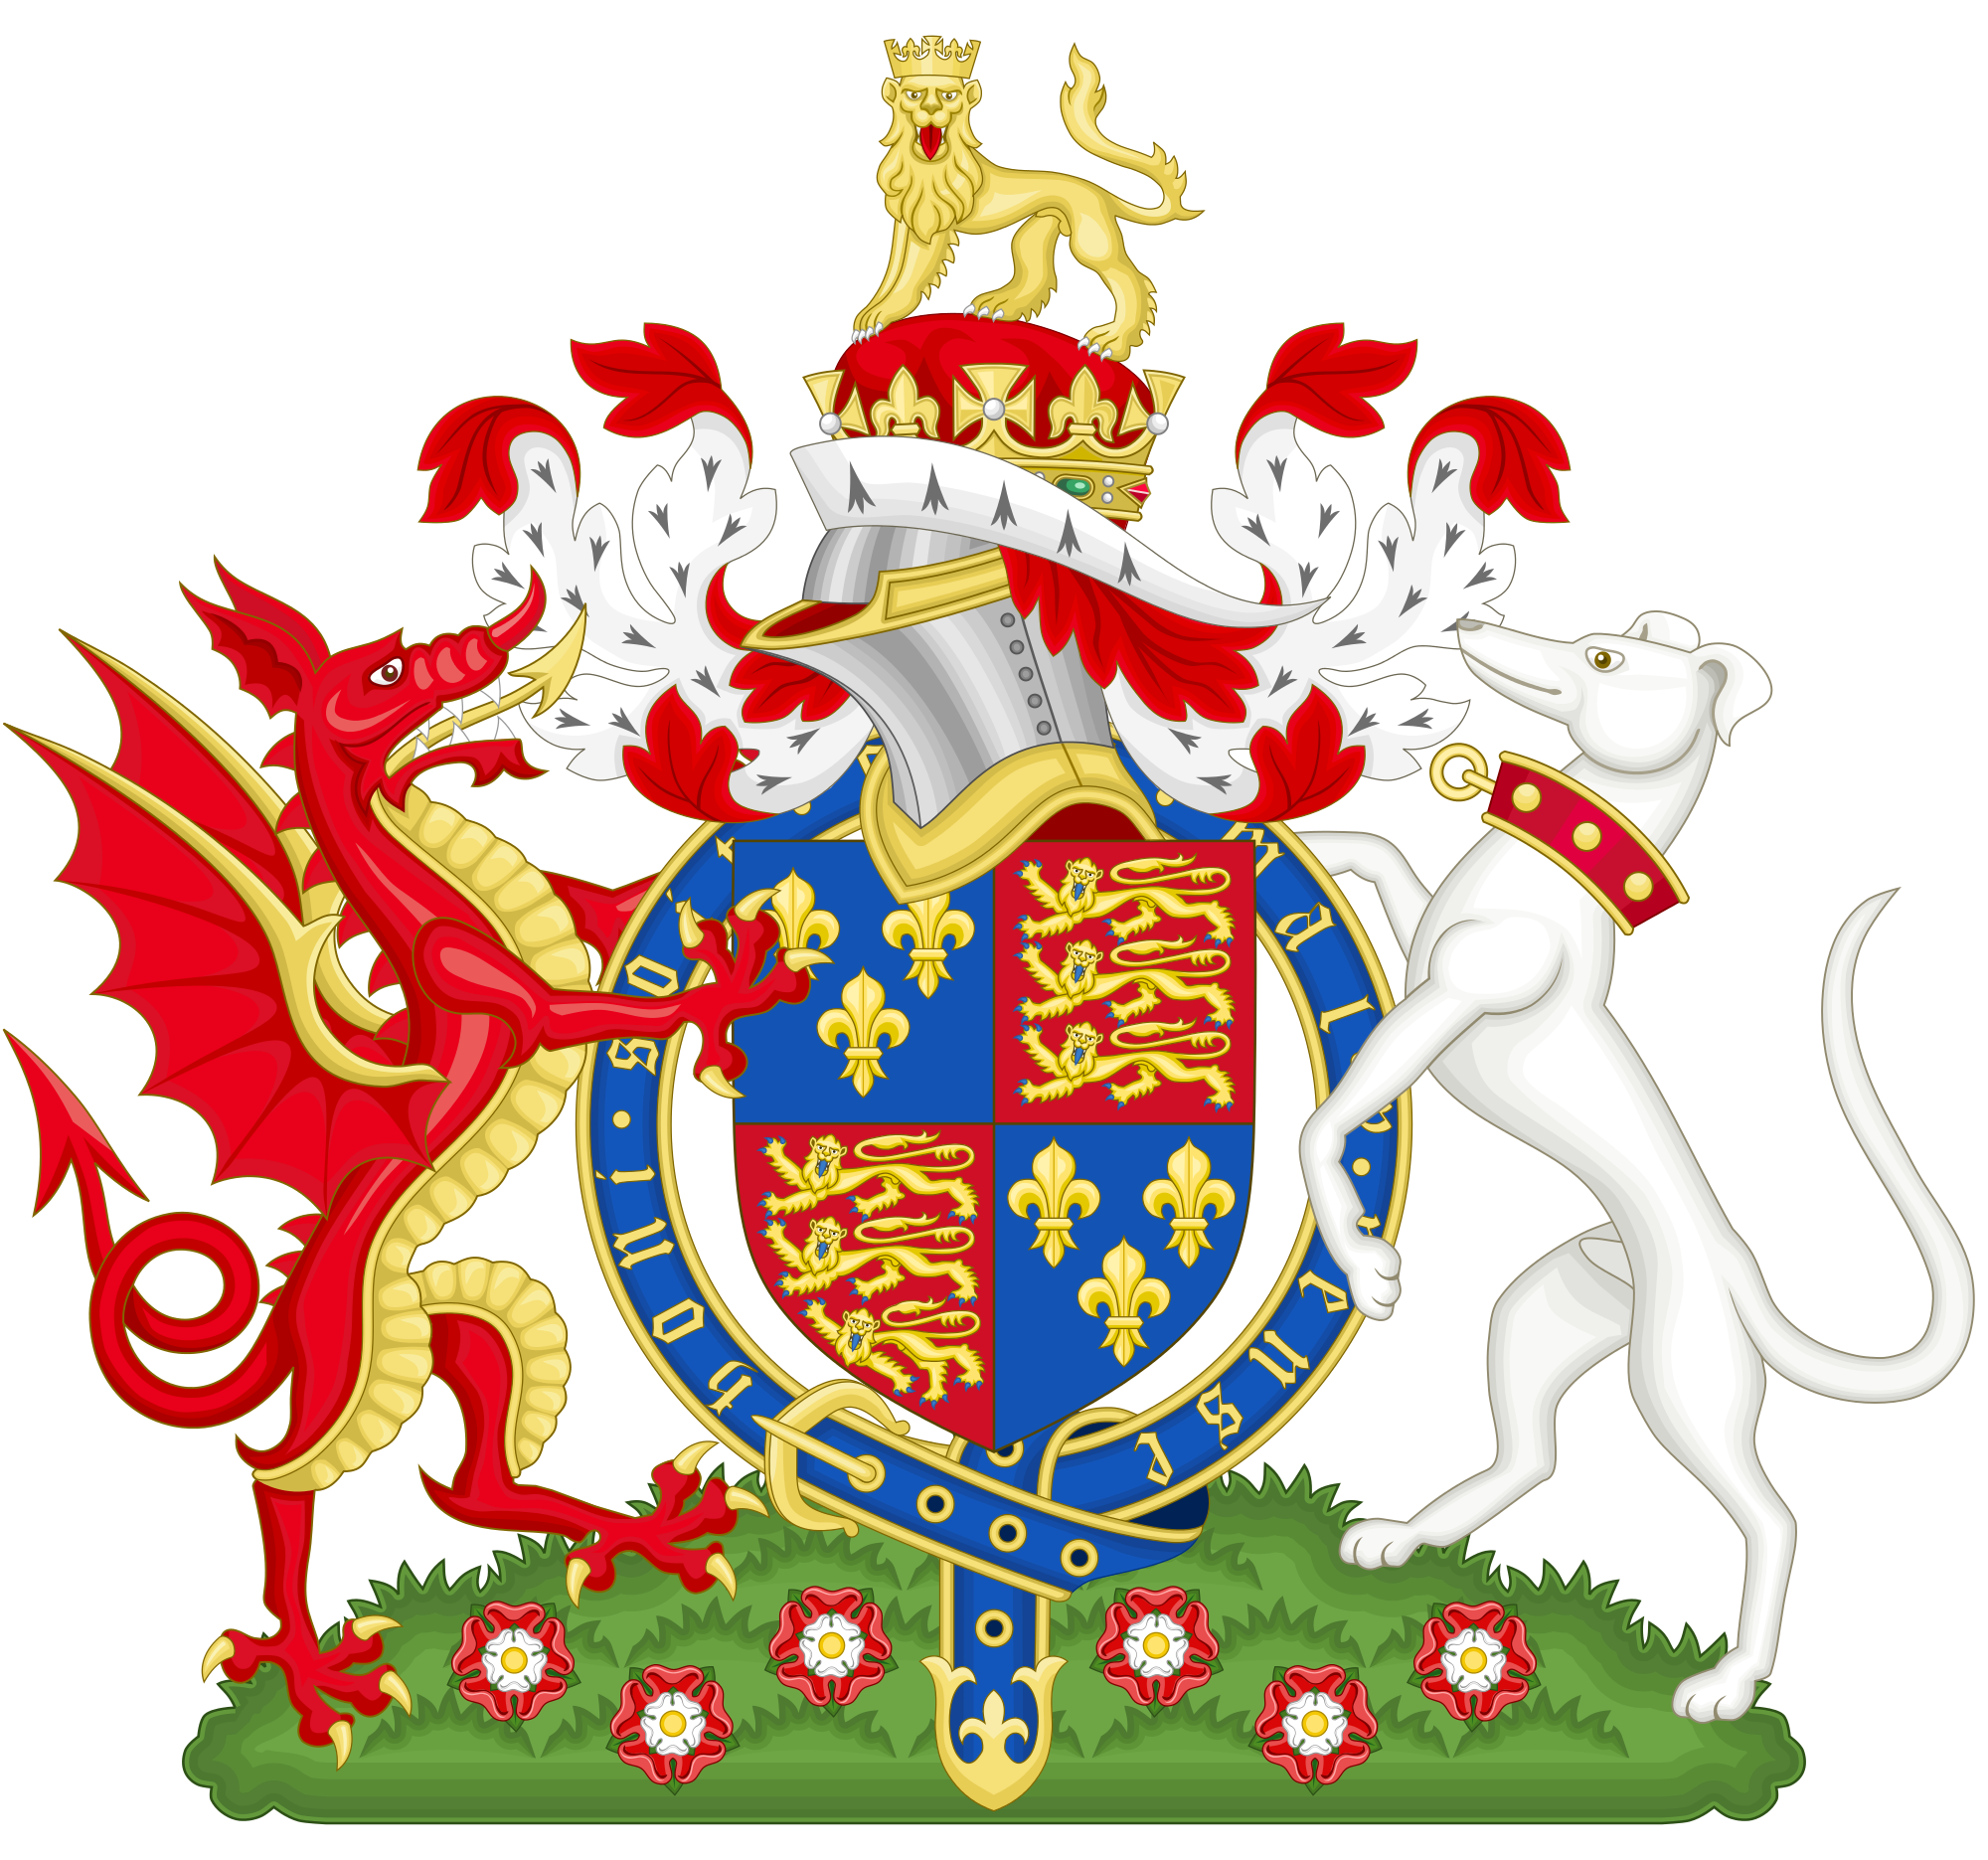 The coat of arms. Palace clipart castle welsh